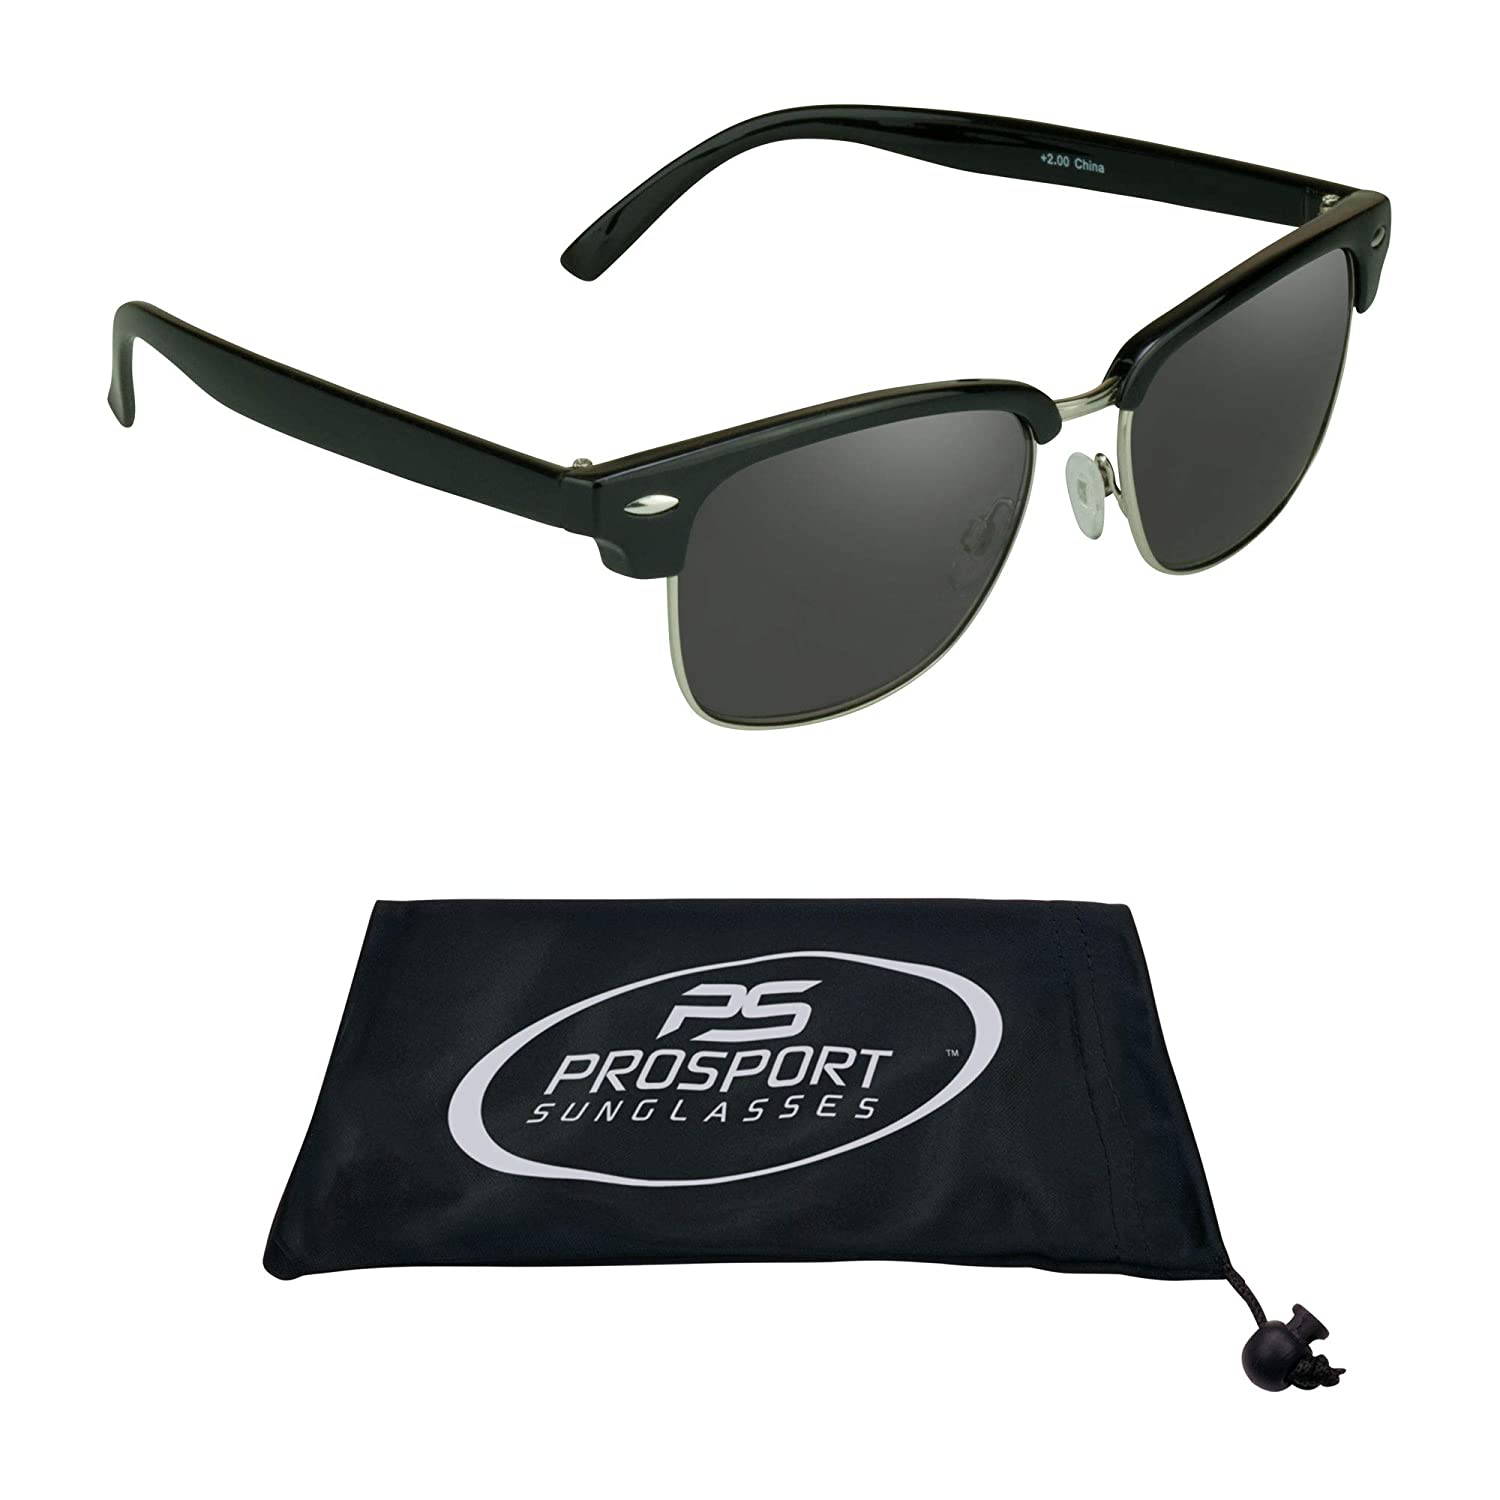 4fd3f1423f9 Amazon.com  proSPORT Classic Reading Sunglasses with Round Horn Rimmed  Plastic Frame for Men   Women - Not Bifocal  Clothing